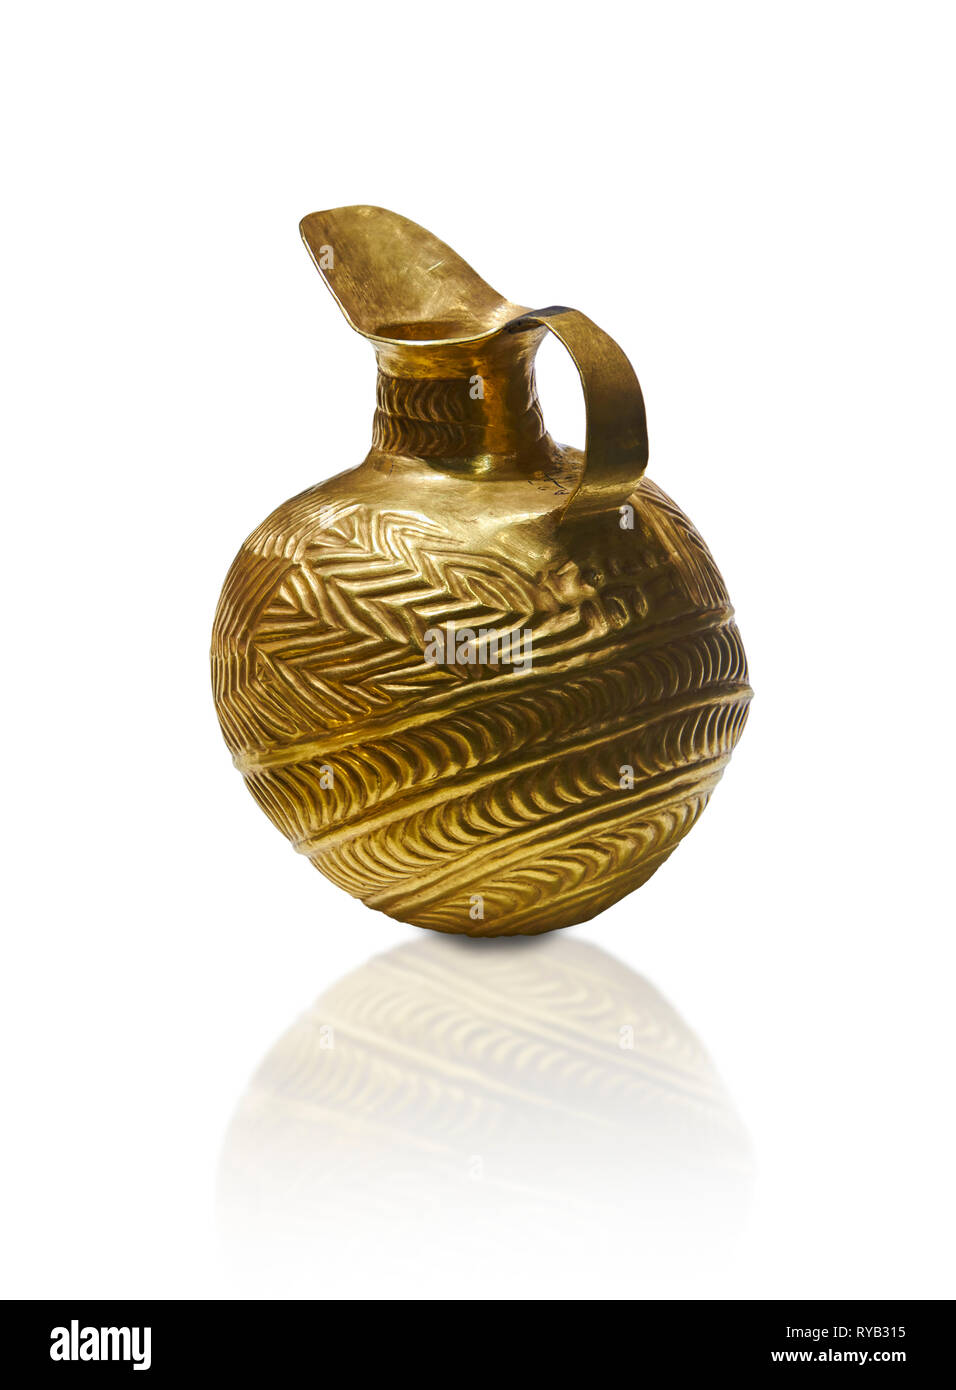 Bronze Age Hattian gold flask from Grave K, possibly a Bronze Age Royal grave (2500 BC to 2250 BC) - Alacahoyuk - Museum of Anatolian Civilisations, A - Stock Image